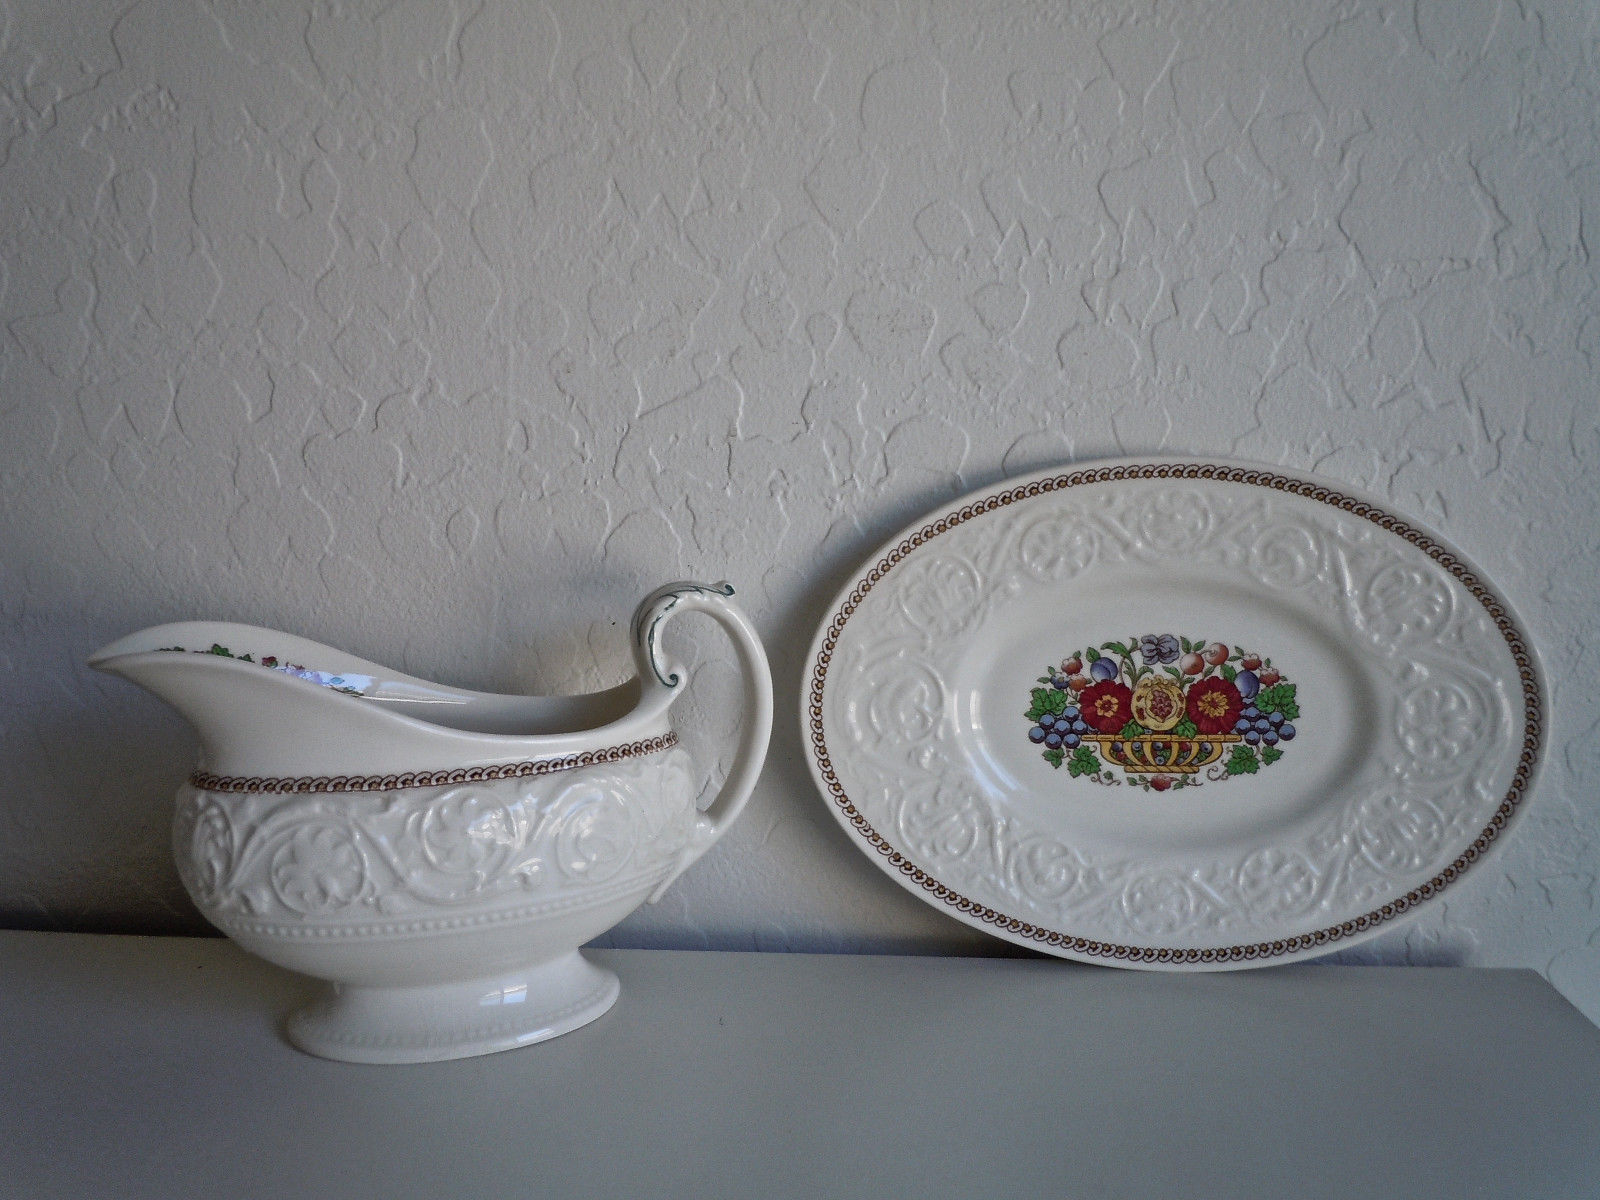 Wedgwood Windermere Multicolor Gravy Boat and Underplate image 5